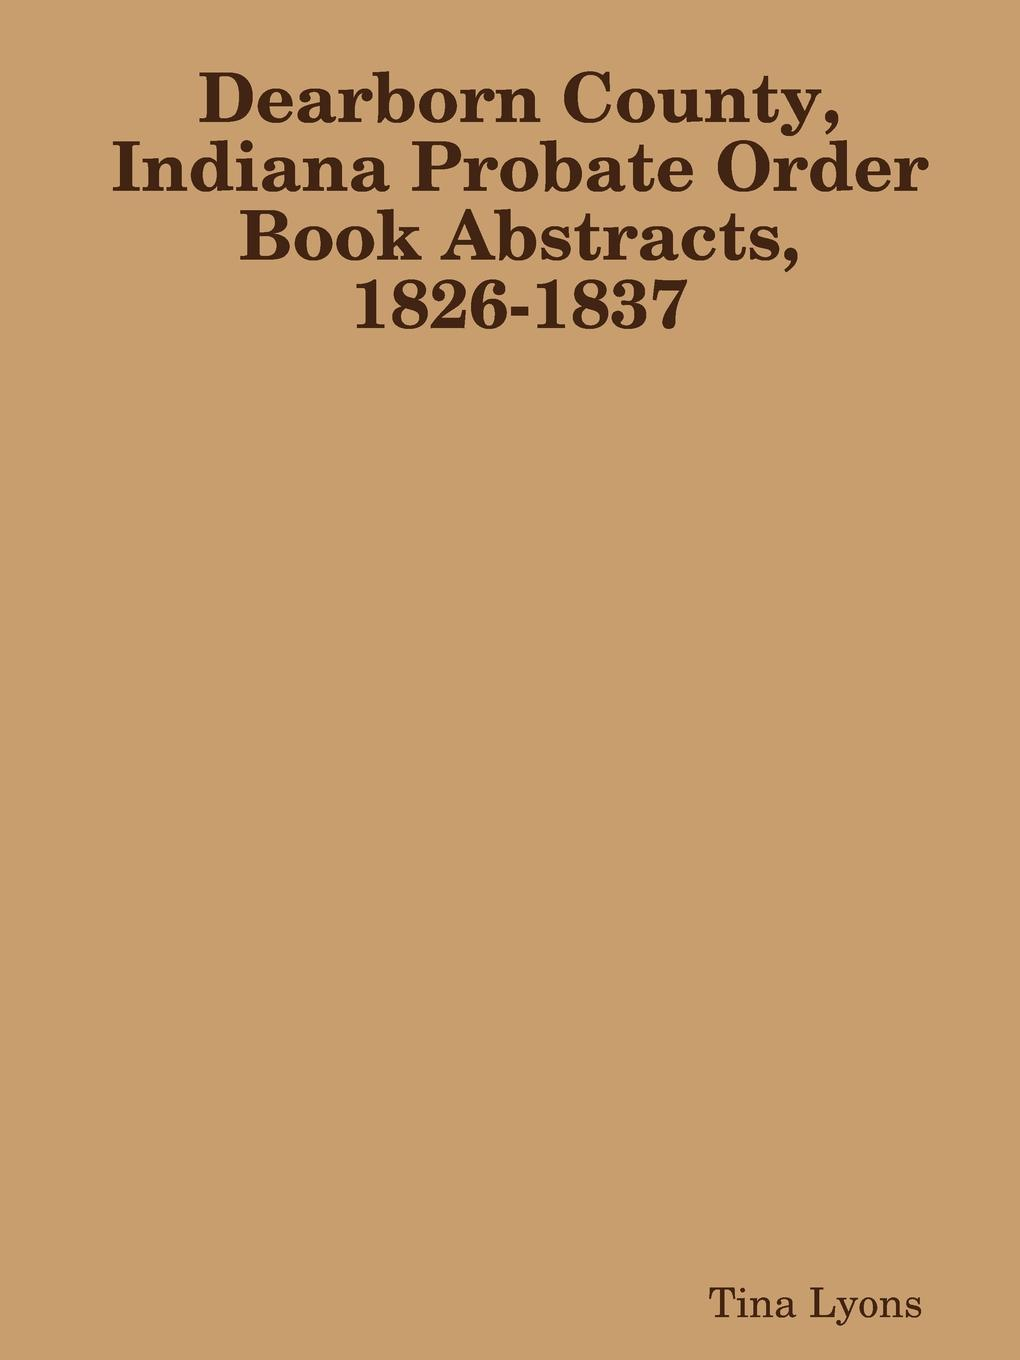 Tina Lyons Dearborn County, Indiana Probate Order Book Abstracts, 1826-1837 russell fishkind j aarp probate wars of the rich and famous an insider s guide to estate and probate litigation